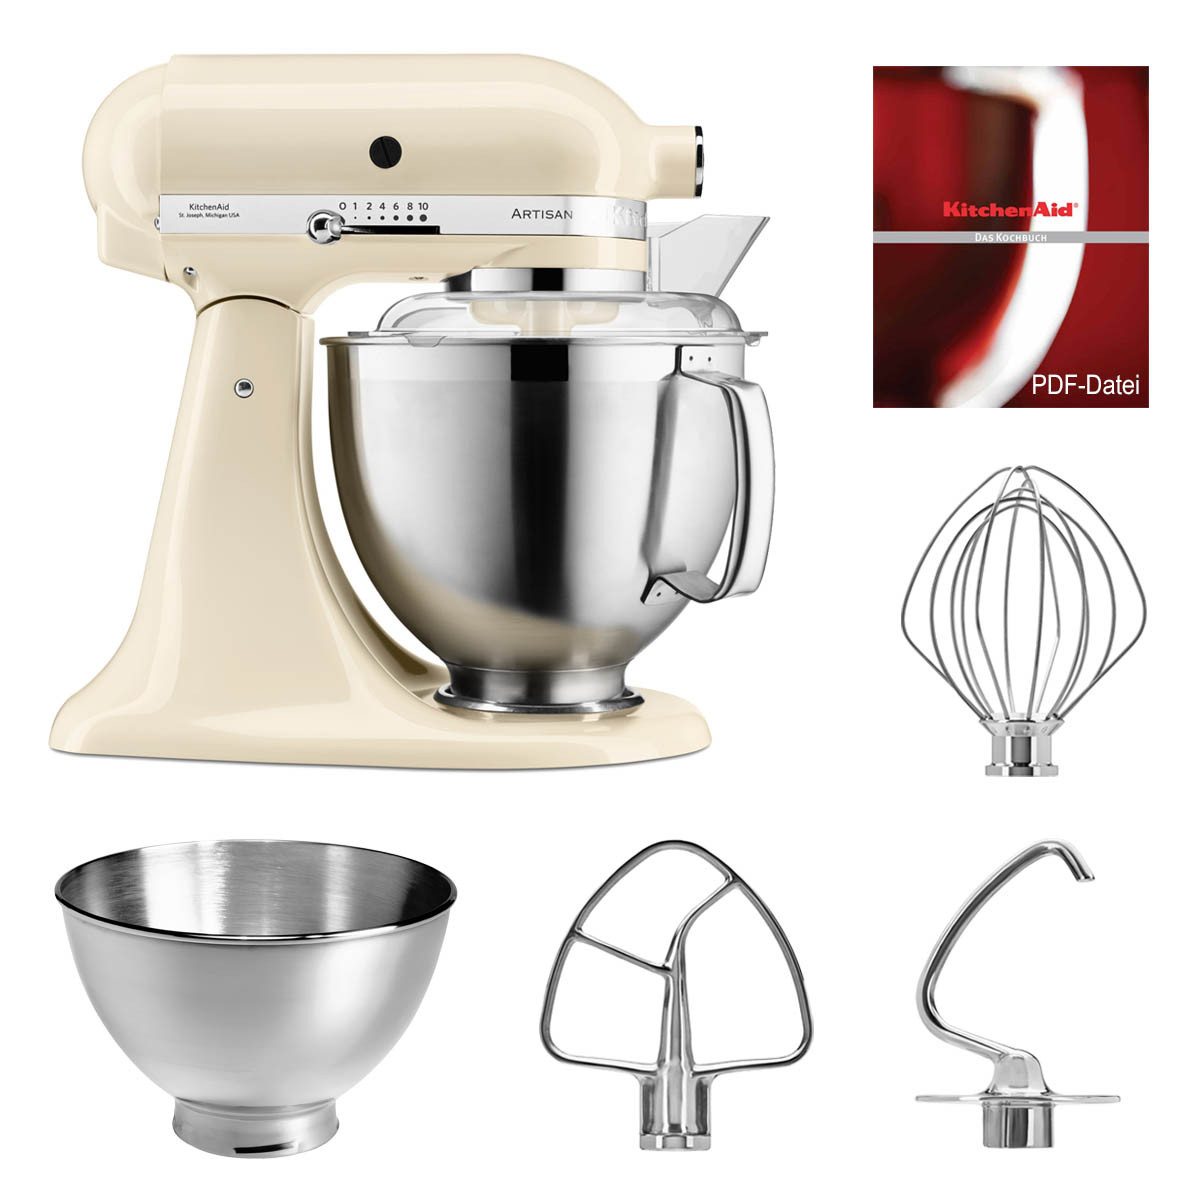 kitchenaid k chenmaschine 5ksm185ps creme. Black Bedroom Furniture Sets. Home Design Ideas